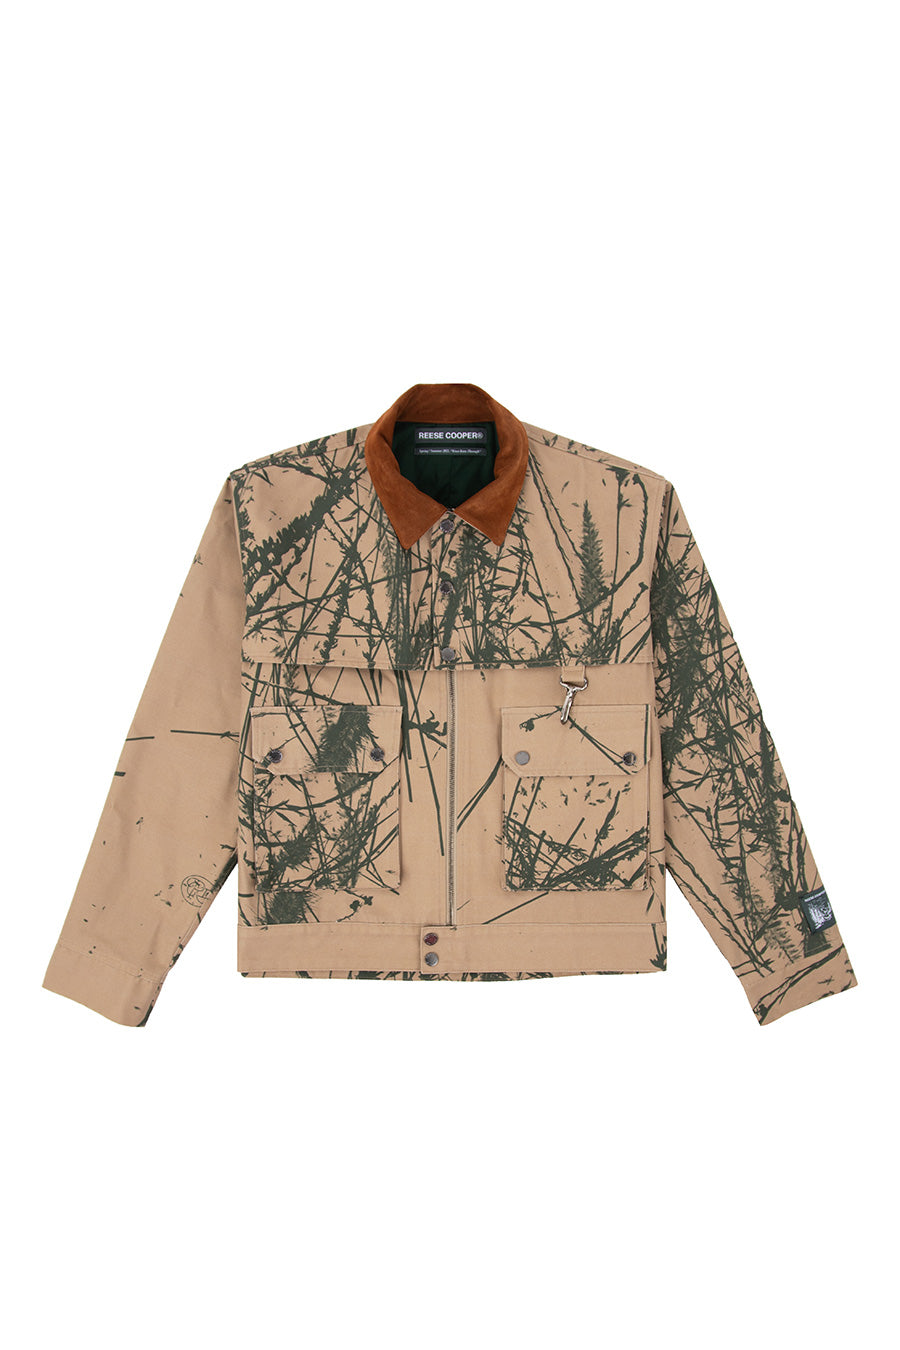 Reese Cooper - Canyon Camo Brushed Cotton Work Jacket | 1032 SPACE